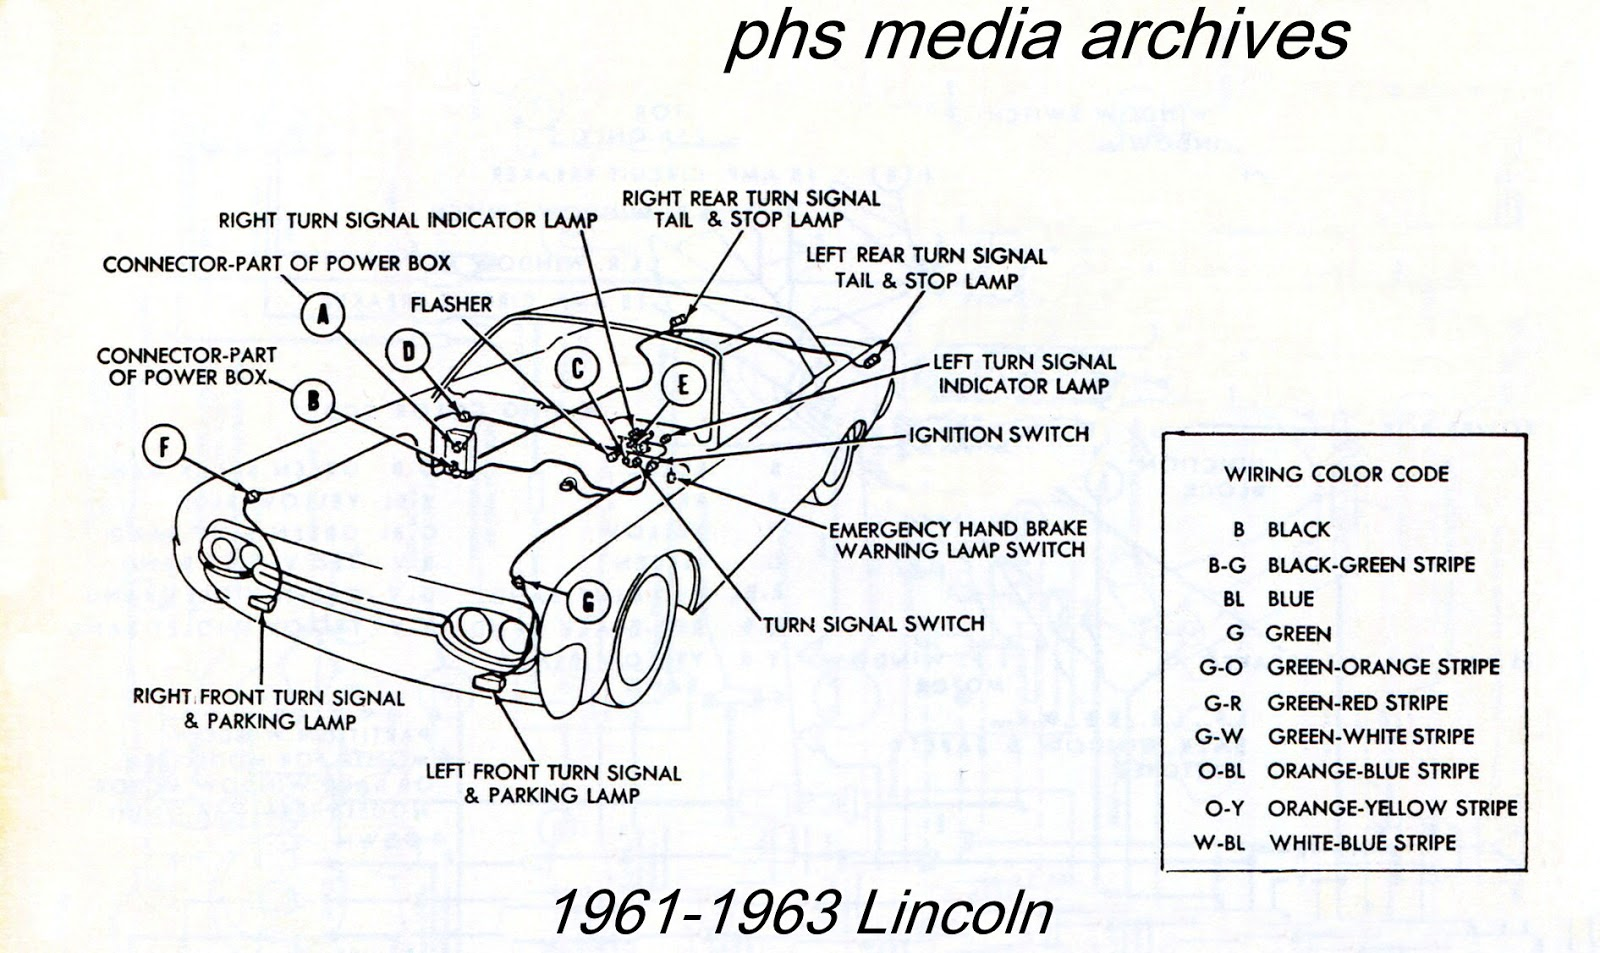 1960 Lincoln Wiring Diagram Start Building A 2000 Continental Engine Schematic Tech Series 1964 Diagrams Phscollectorcarworld Rh Blogspot Com